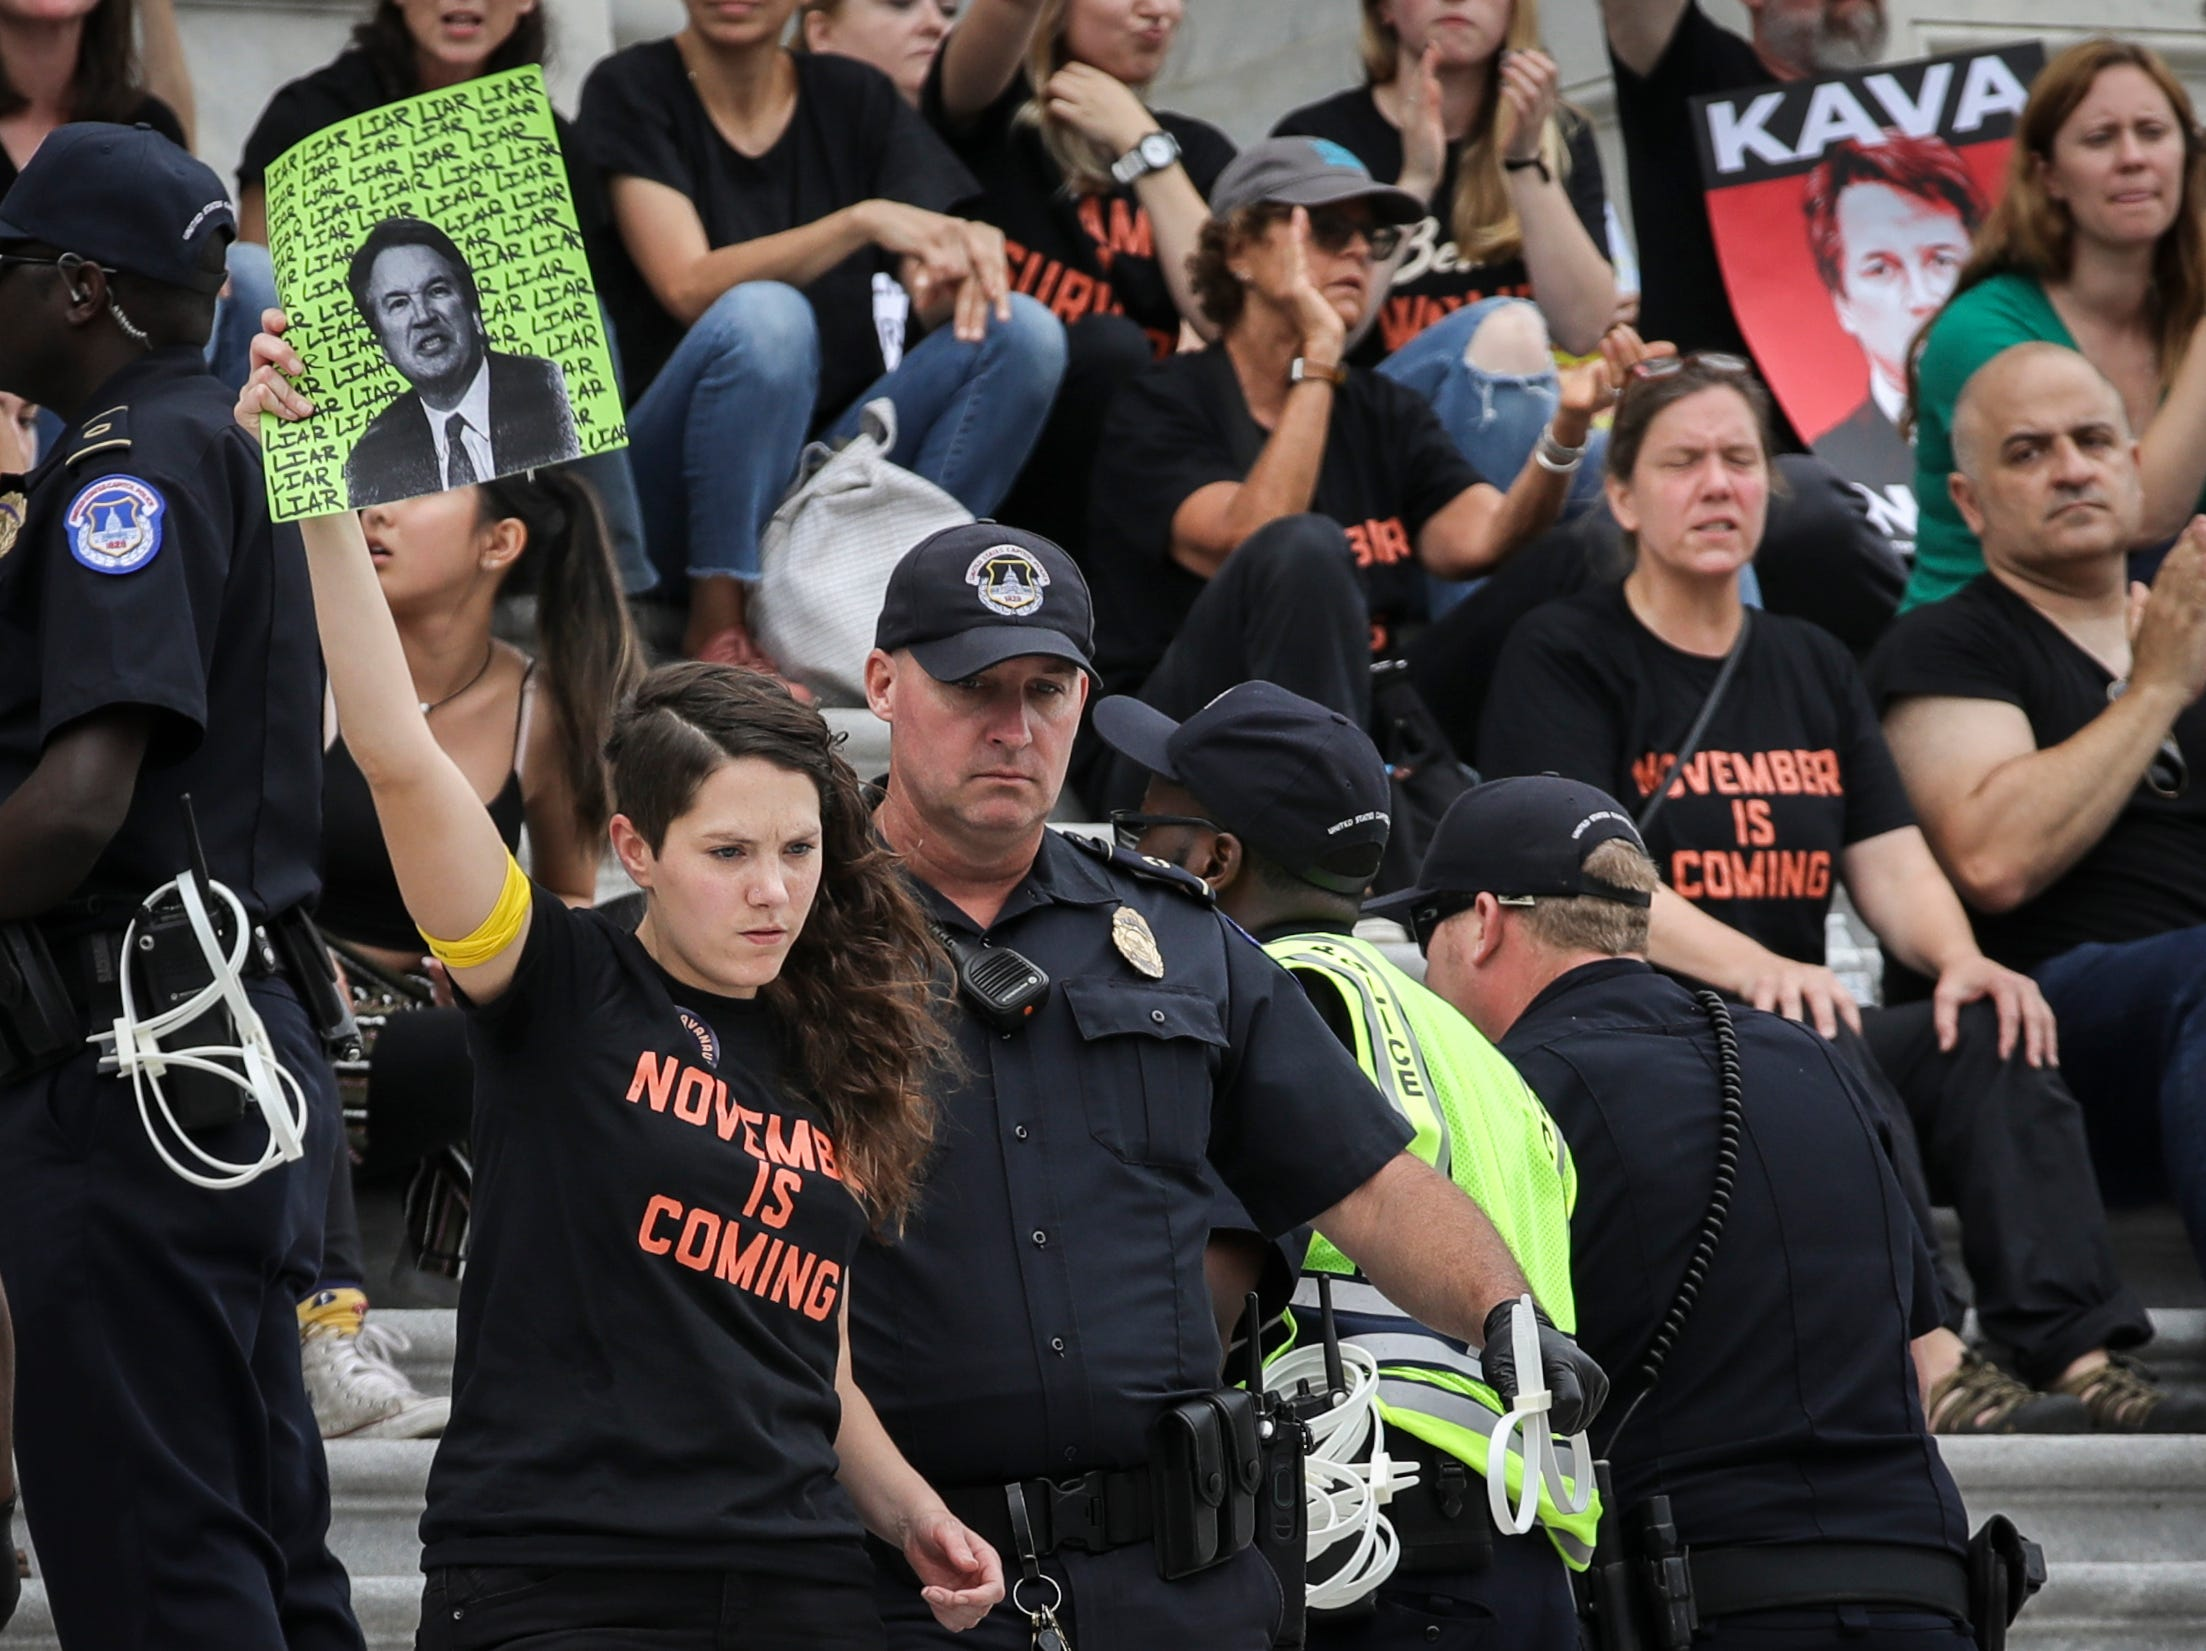 WASHINGTON, DC - OCTOBER 6: A protester is arrested as demonstrators occupy the steps on the East Front of the U.S. Capitol in protest of Supreme Court nominee Judge Brett Kavanaugh, October 6, 2018 in Washington, DC. Hundreds were arrested by Capitol Police during the demonstration. The Senate is set to hold a final vote Saturday evening to confirm the nomination of Judge Brett Kavanaugh to the U.S. Supreme Court. (Photo by Drew Angerer/Getty Images)